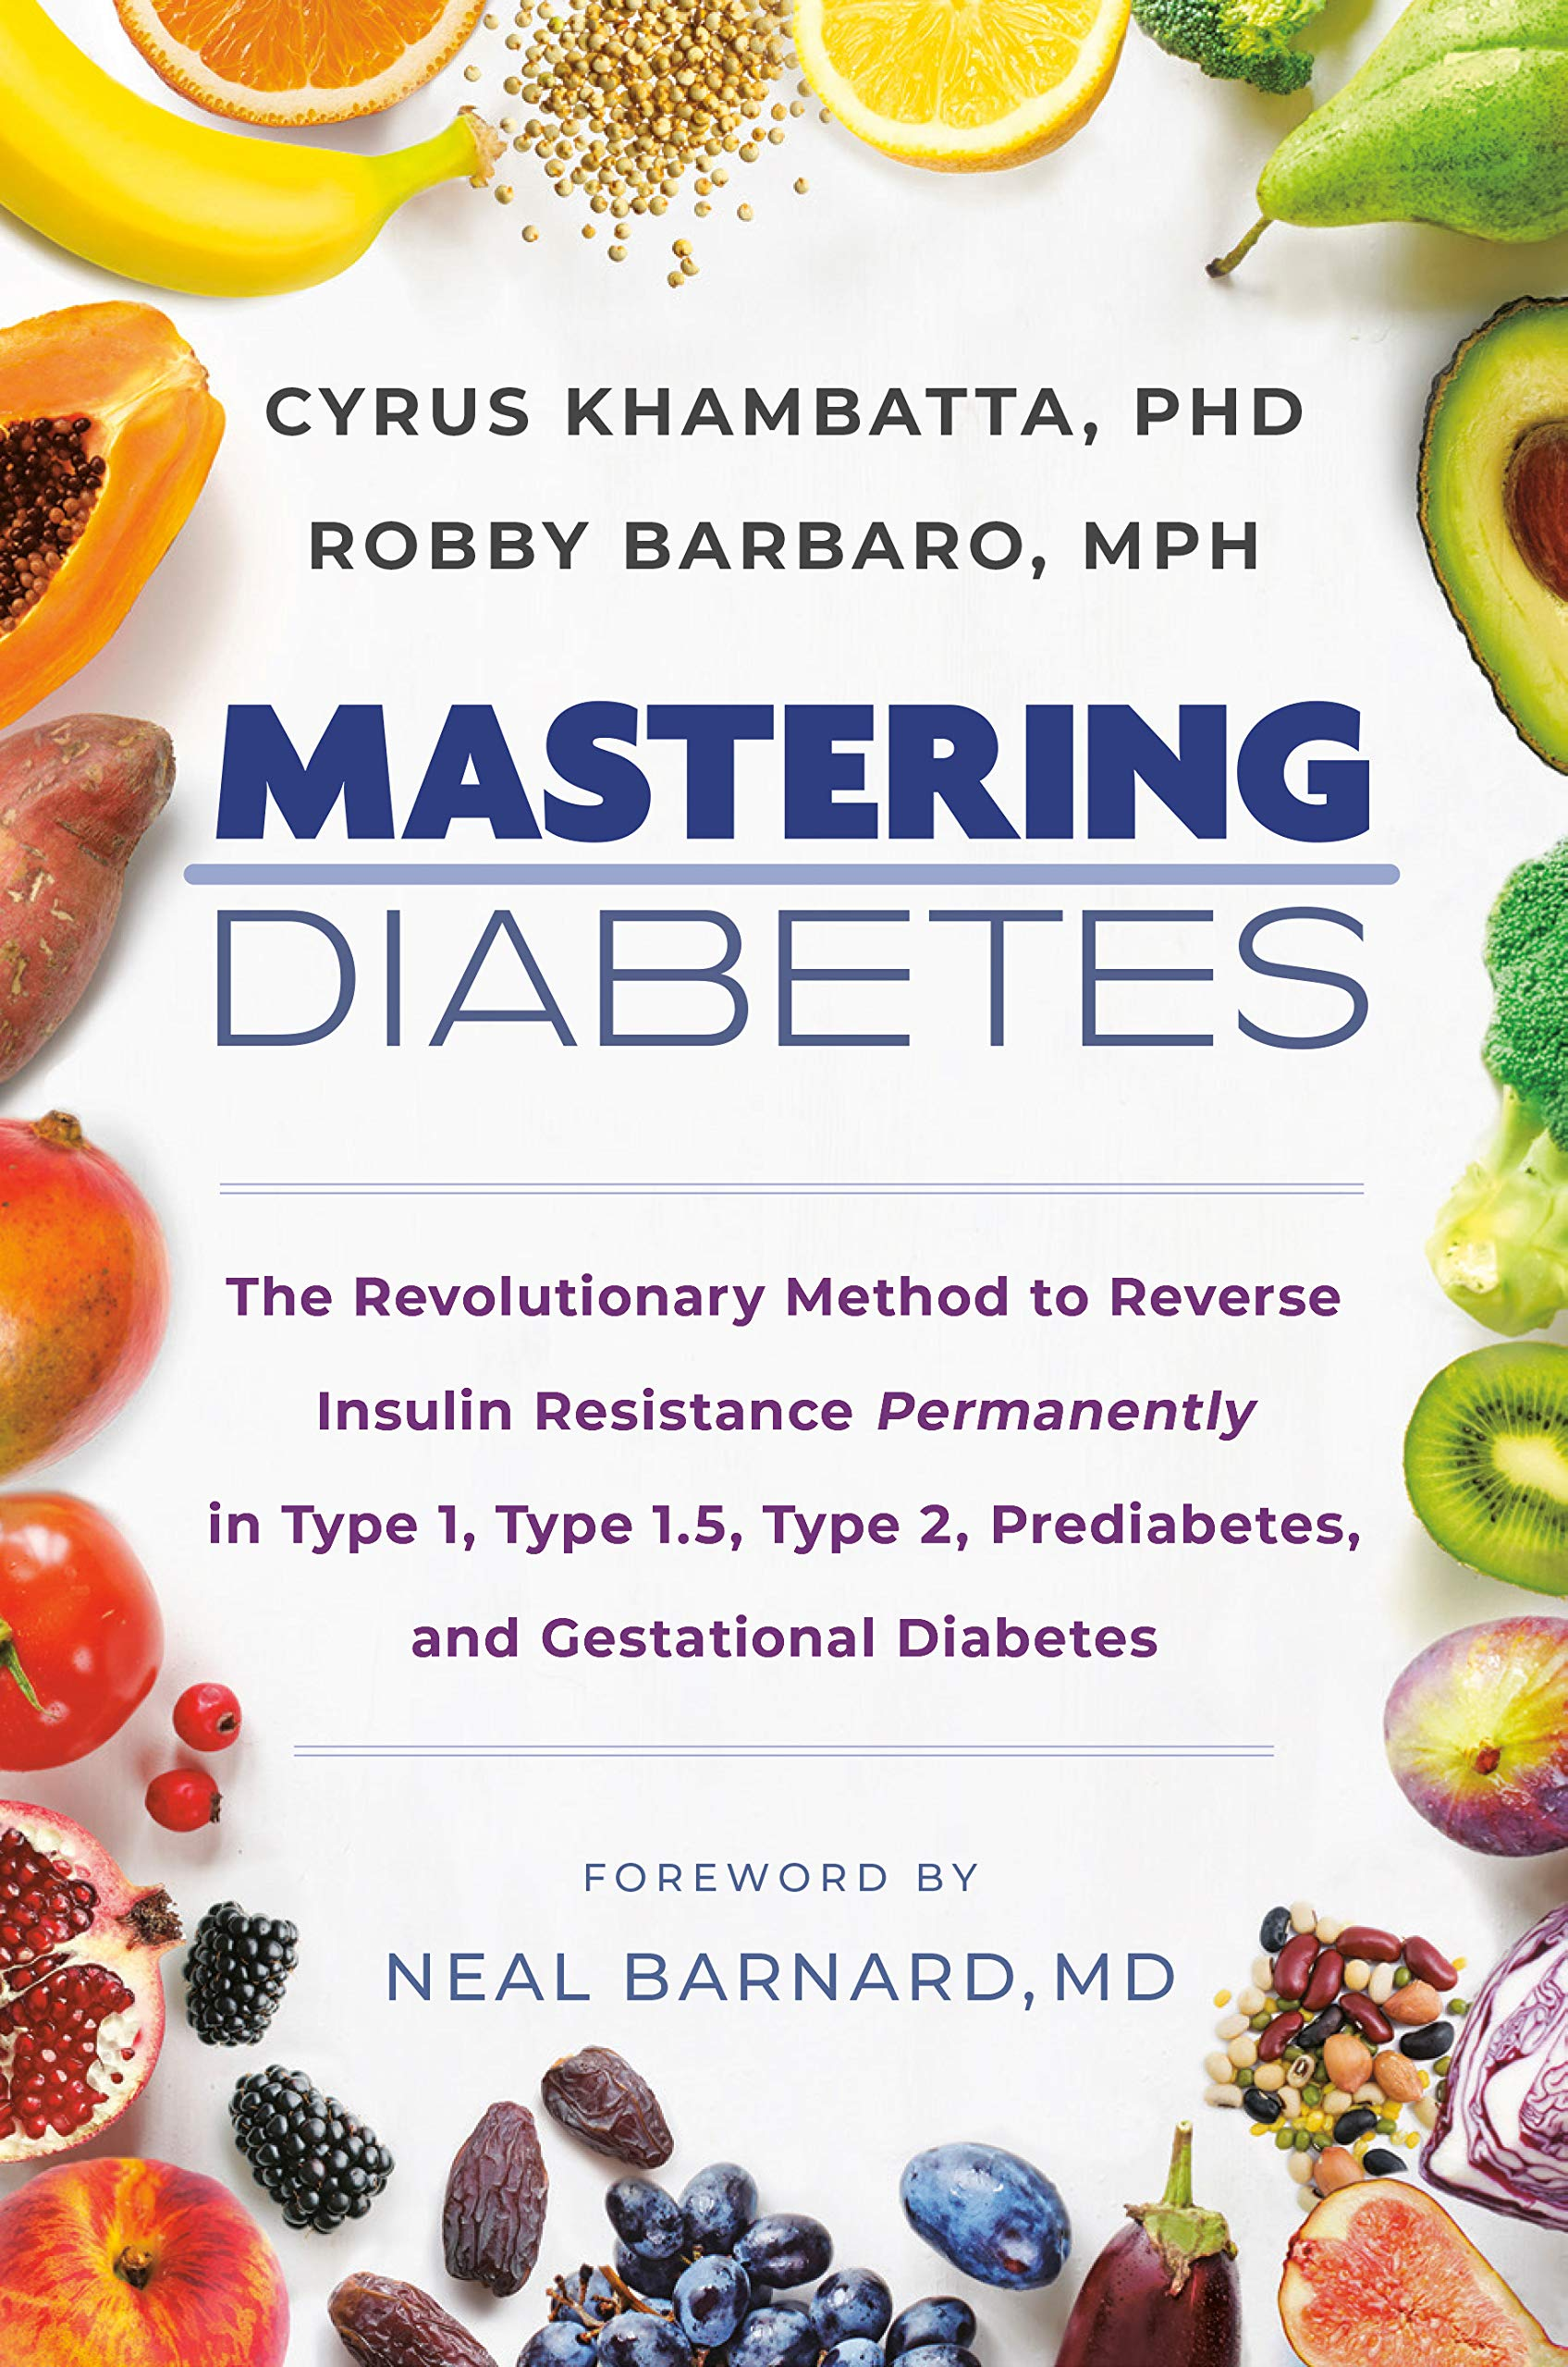 Mastering Diabetes  The Revolutionary Method To Reverse Insulin Resistance Permanently In Type 1 Type 1.5 Type 2 Prediabetes And Gestational Diabetes  English Edition